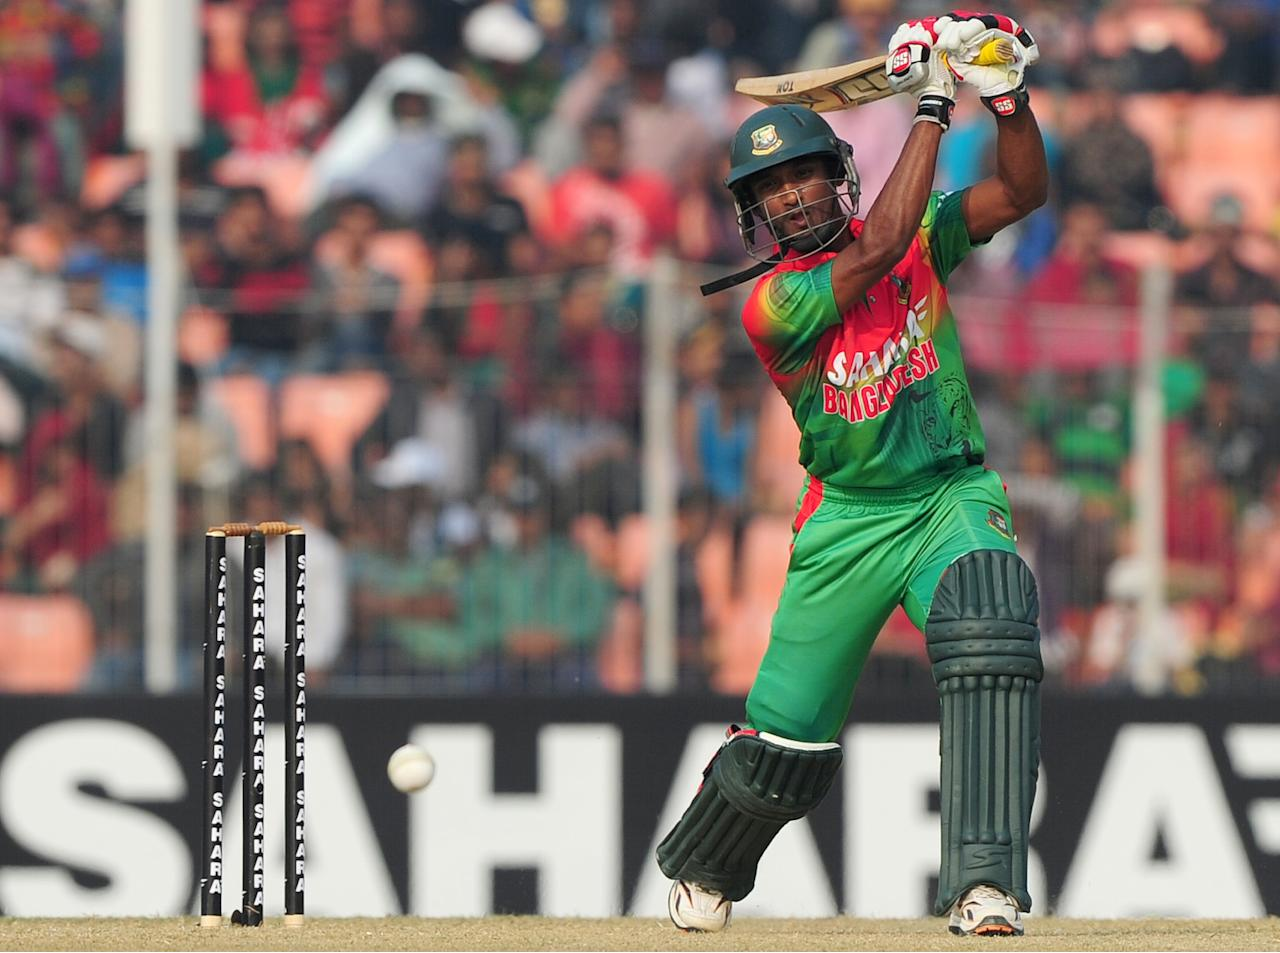 Bangladesh cricketer Naeem Islam plays a shot during the first one day international cricket match between Bangladesh and The West Indies at The Sheikh Abu Naser Stadium in Khulna on November 30, 2012. AFP PHOTO/ Munir uz ZAMAN